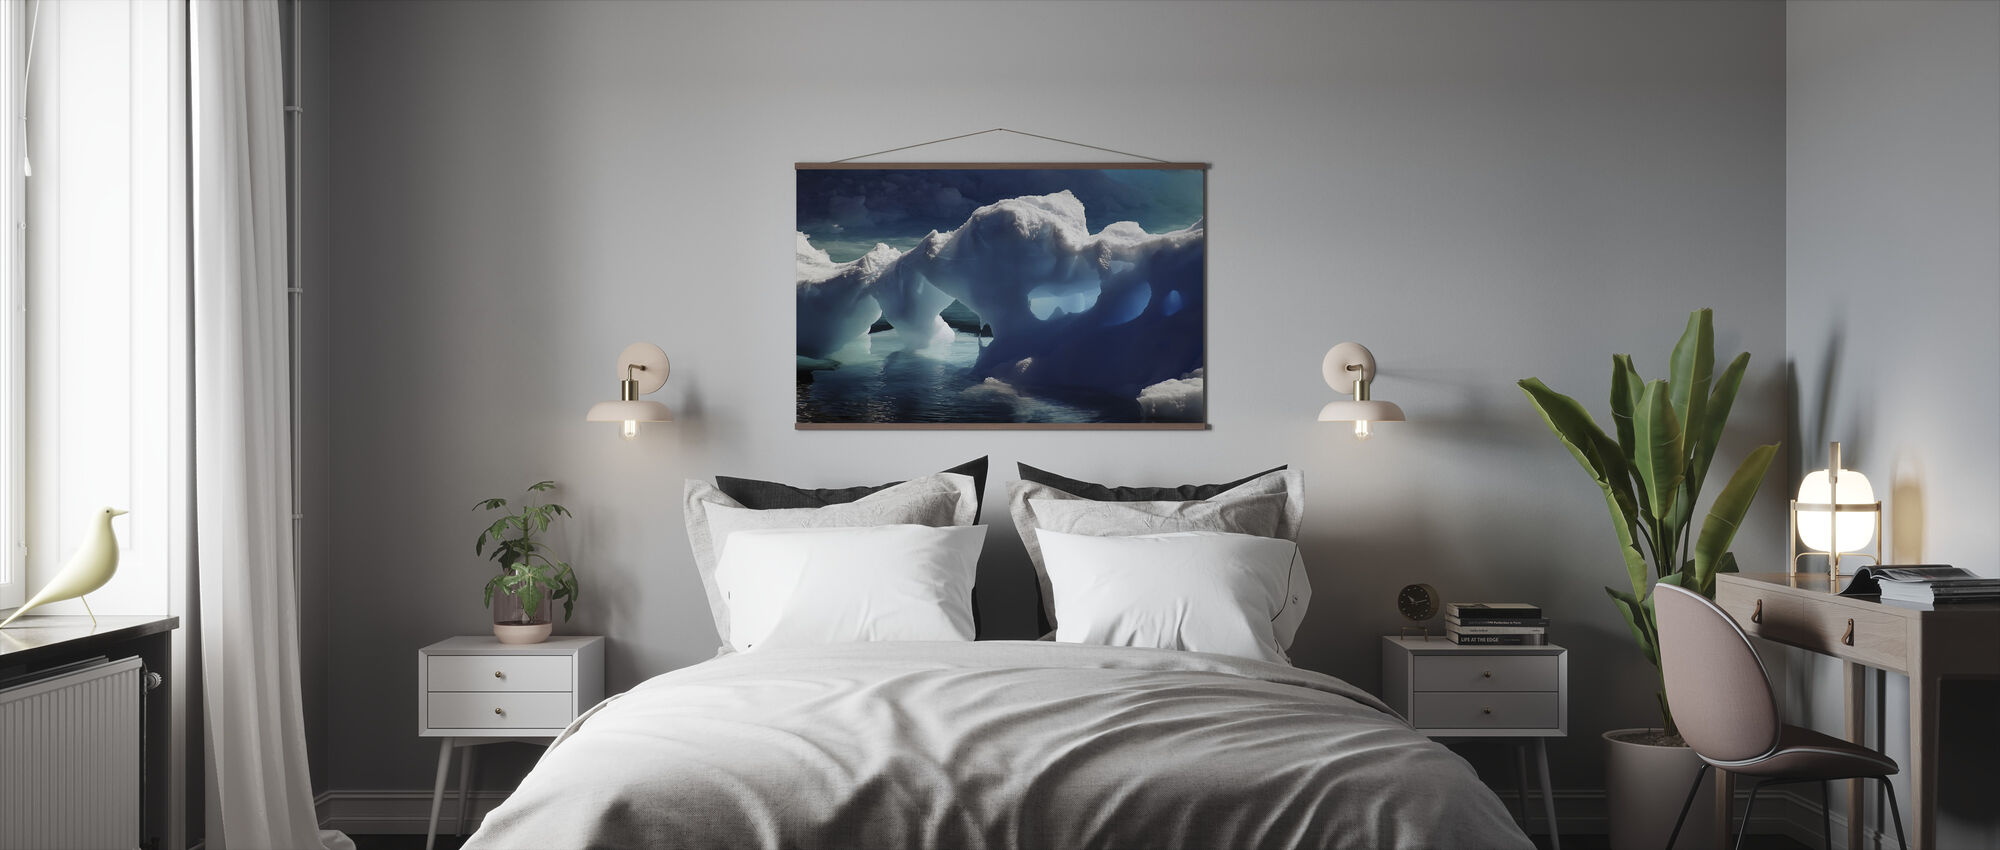 Antarctic Ice Caves - Poster - Bedroom